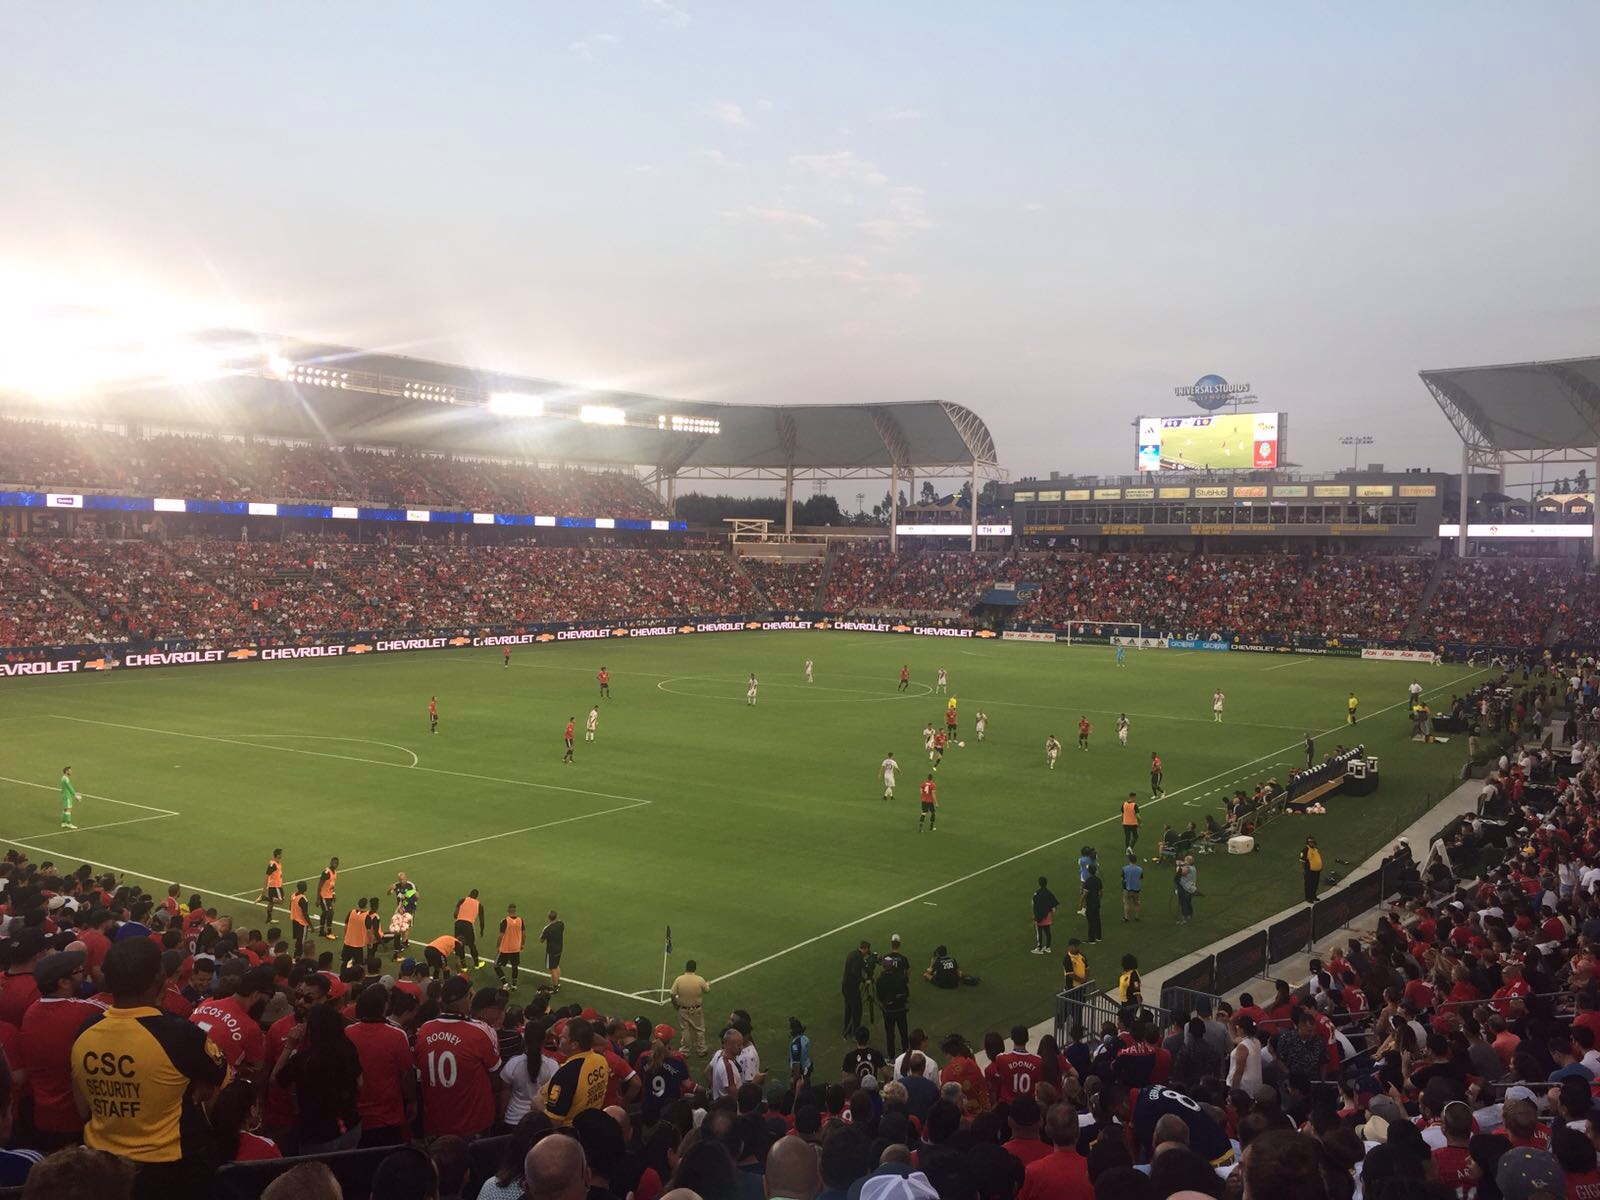 Los Angeles Galaxy vs Manchester United / Foto: MarcadorInt